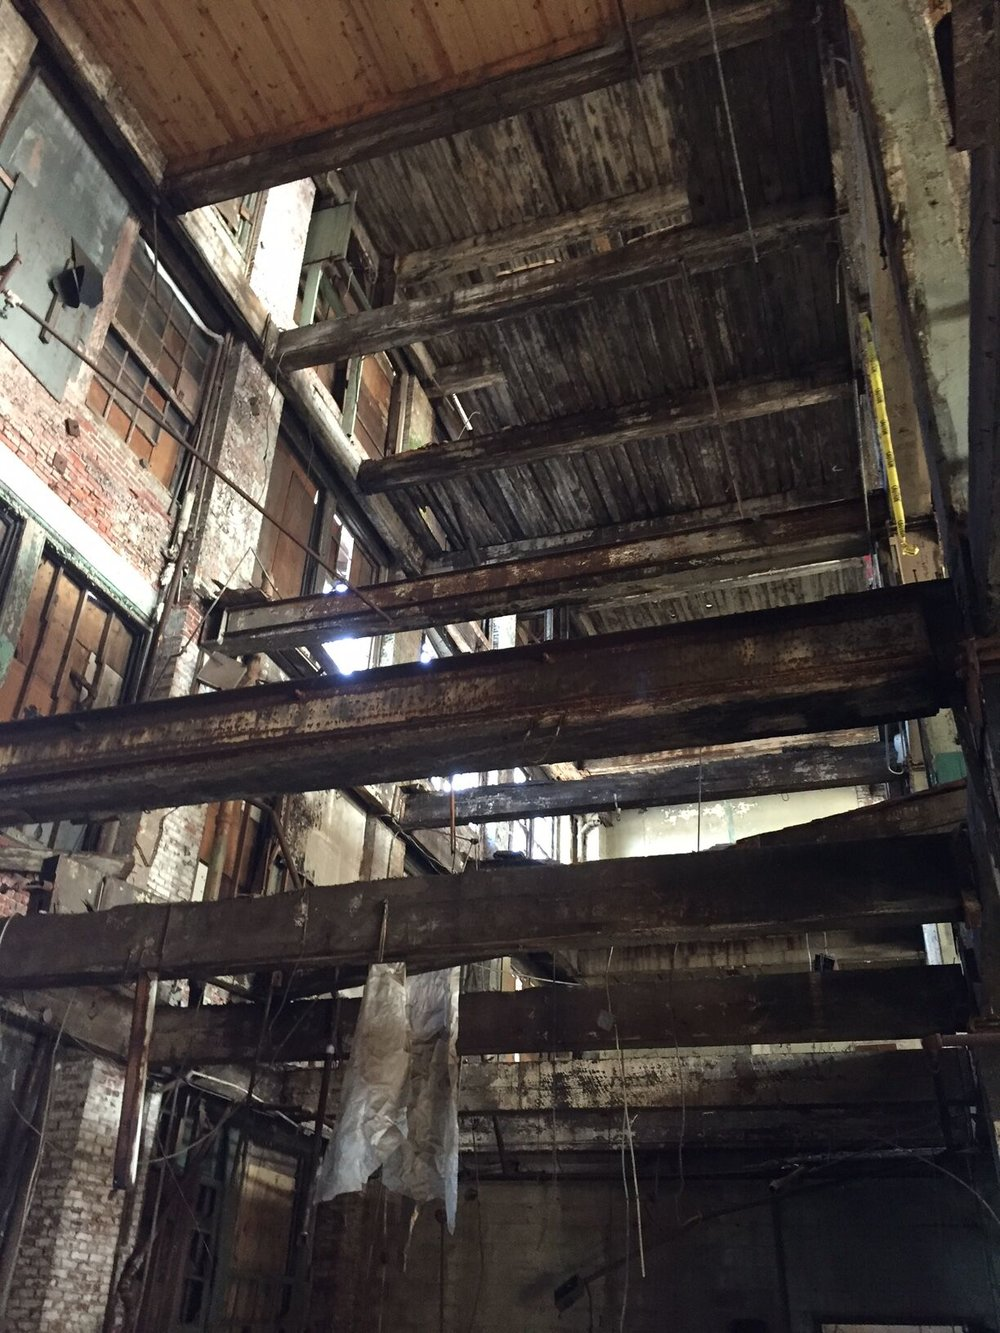 View looking up from the first floor through the five stories of the factory.